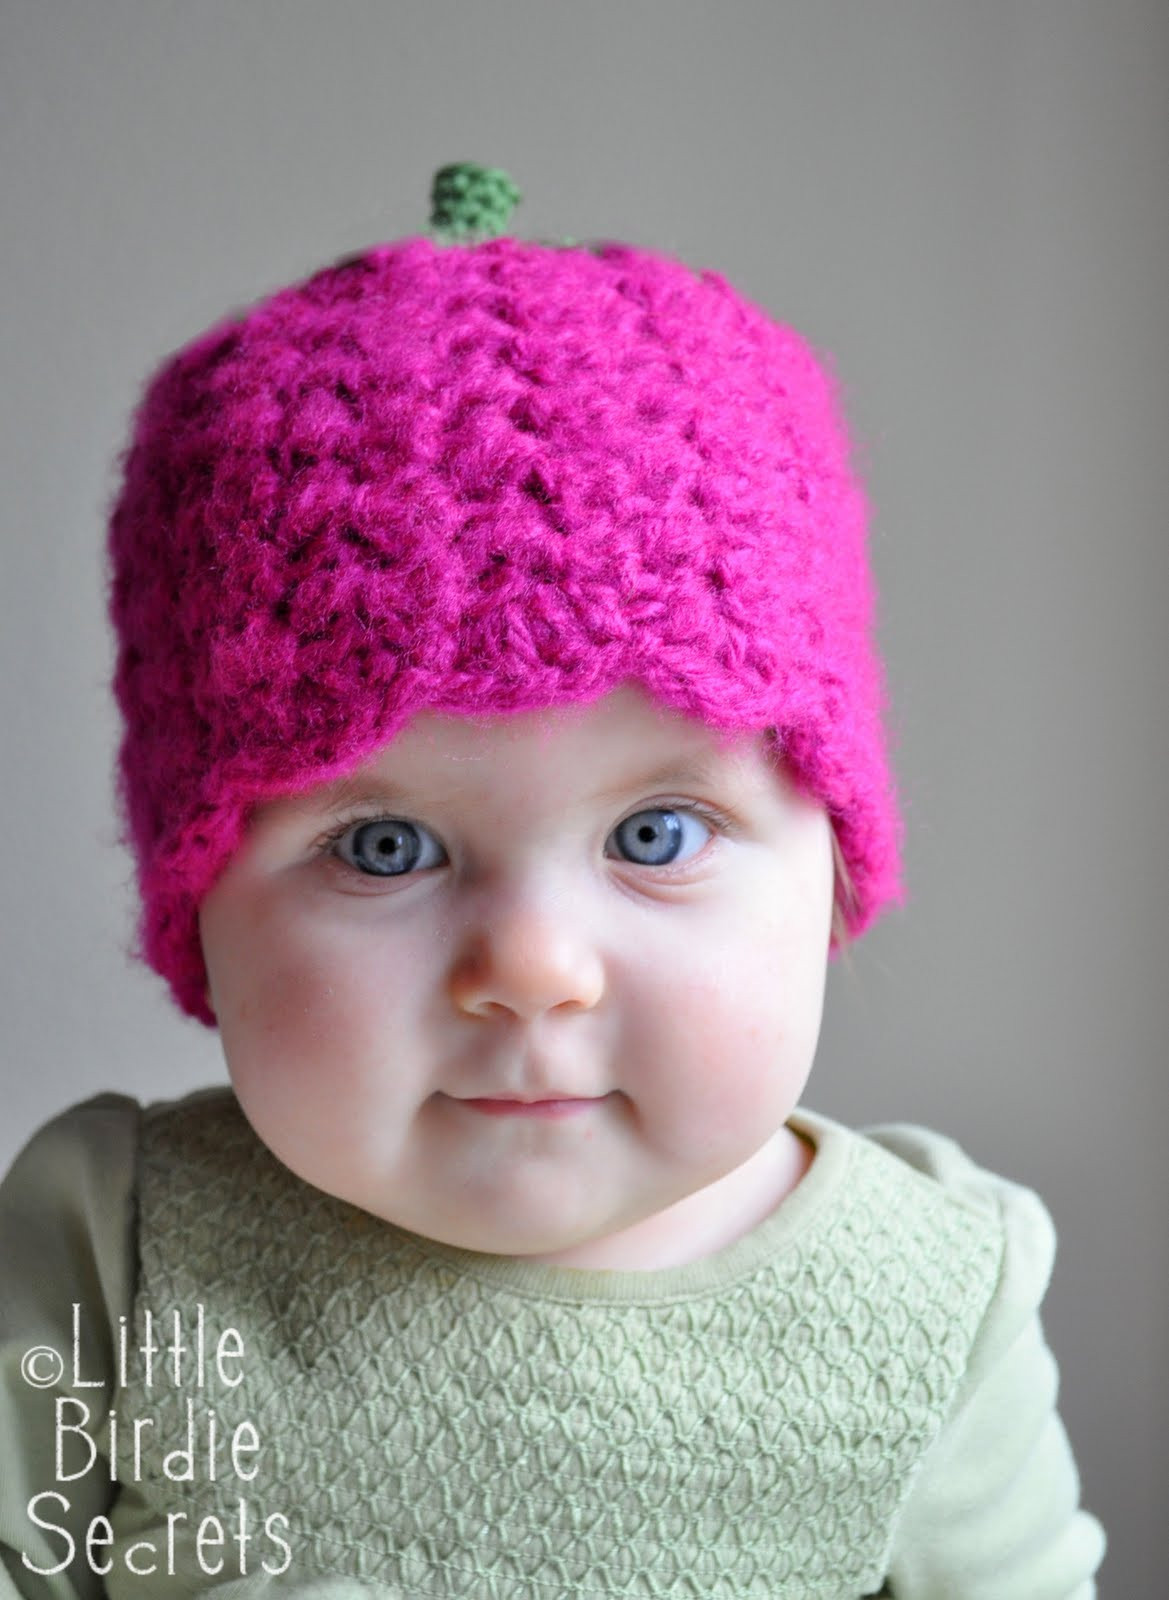 Crochet Beanie Hat New Raspberry or Strawberry Free Crochet Pattern and A Of New 50 Images Crochet Beanie Hat